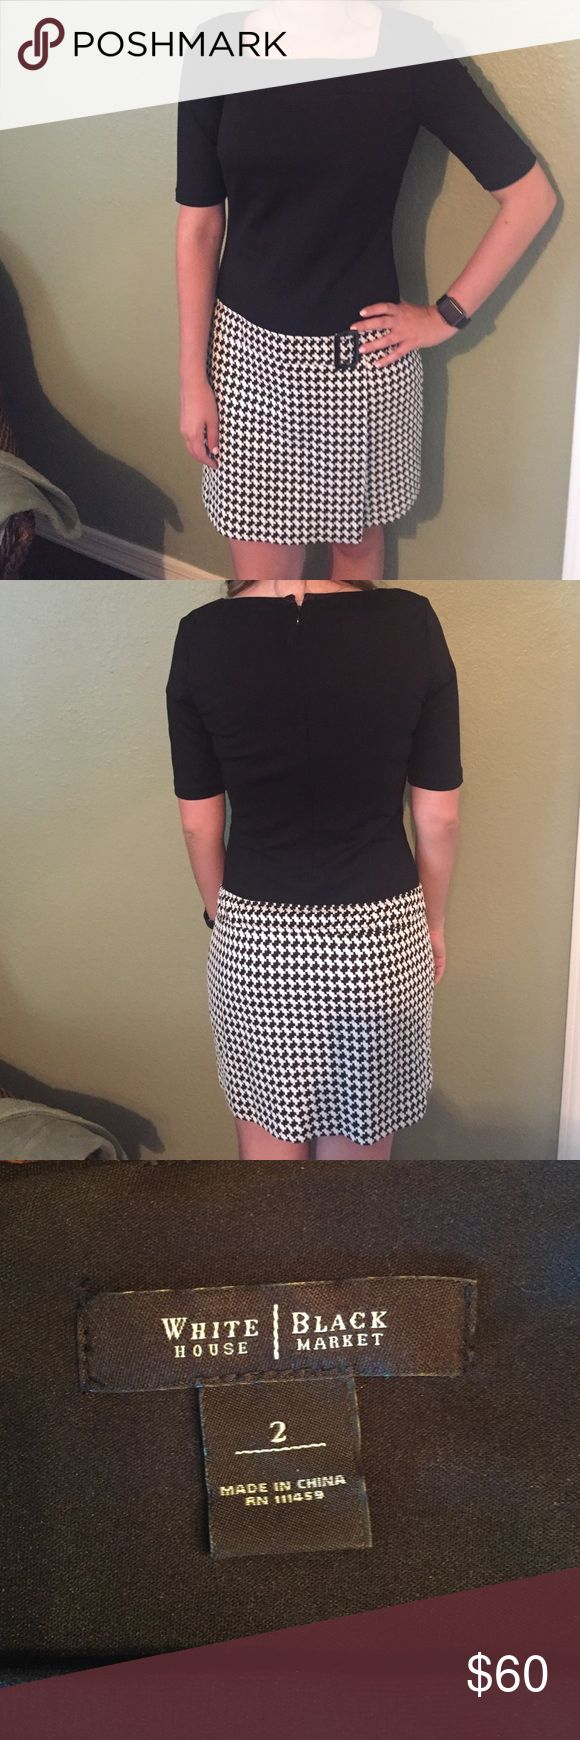 🔥Make Offers!🔥 White House Black Market Dress Adorable dress! Size 2. In perfect condition. Has a cute little belt accent! White House Black Market Dresses